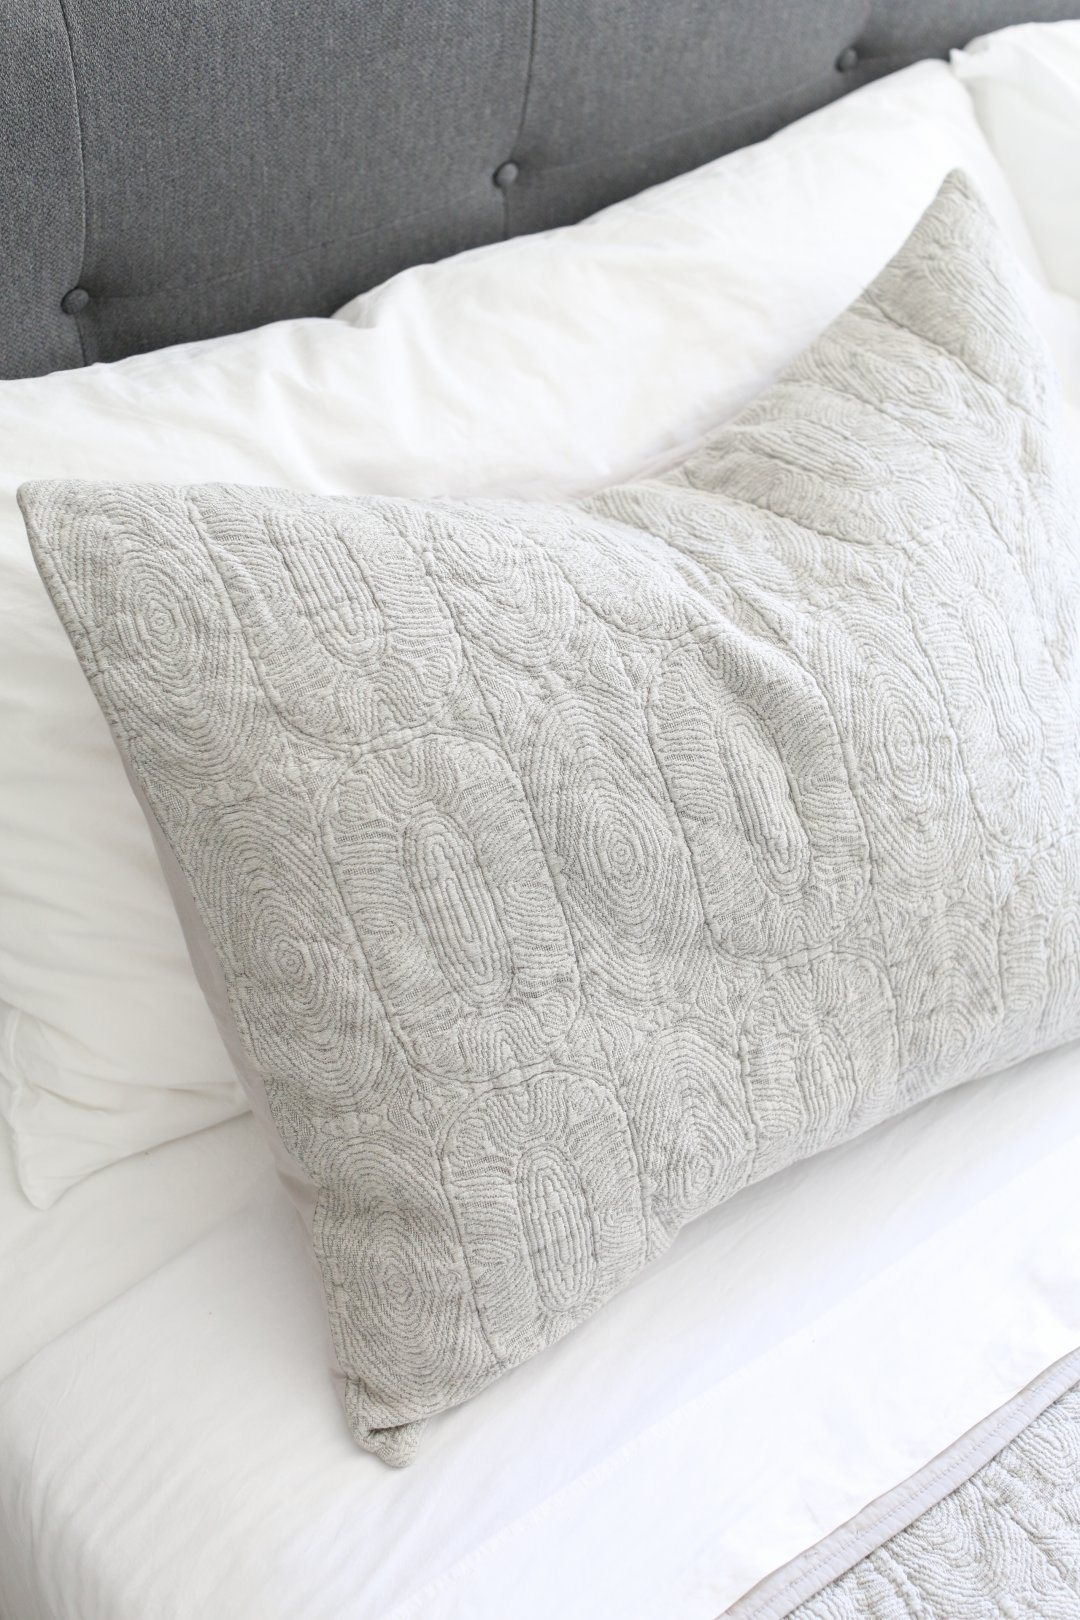 Pillow in grey sham on bed